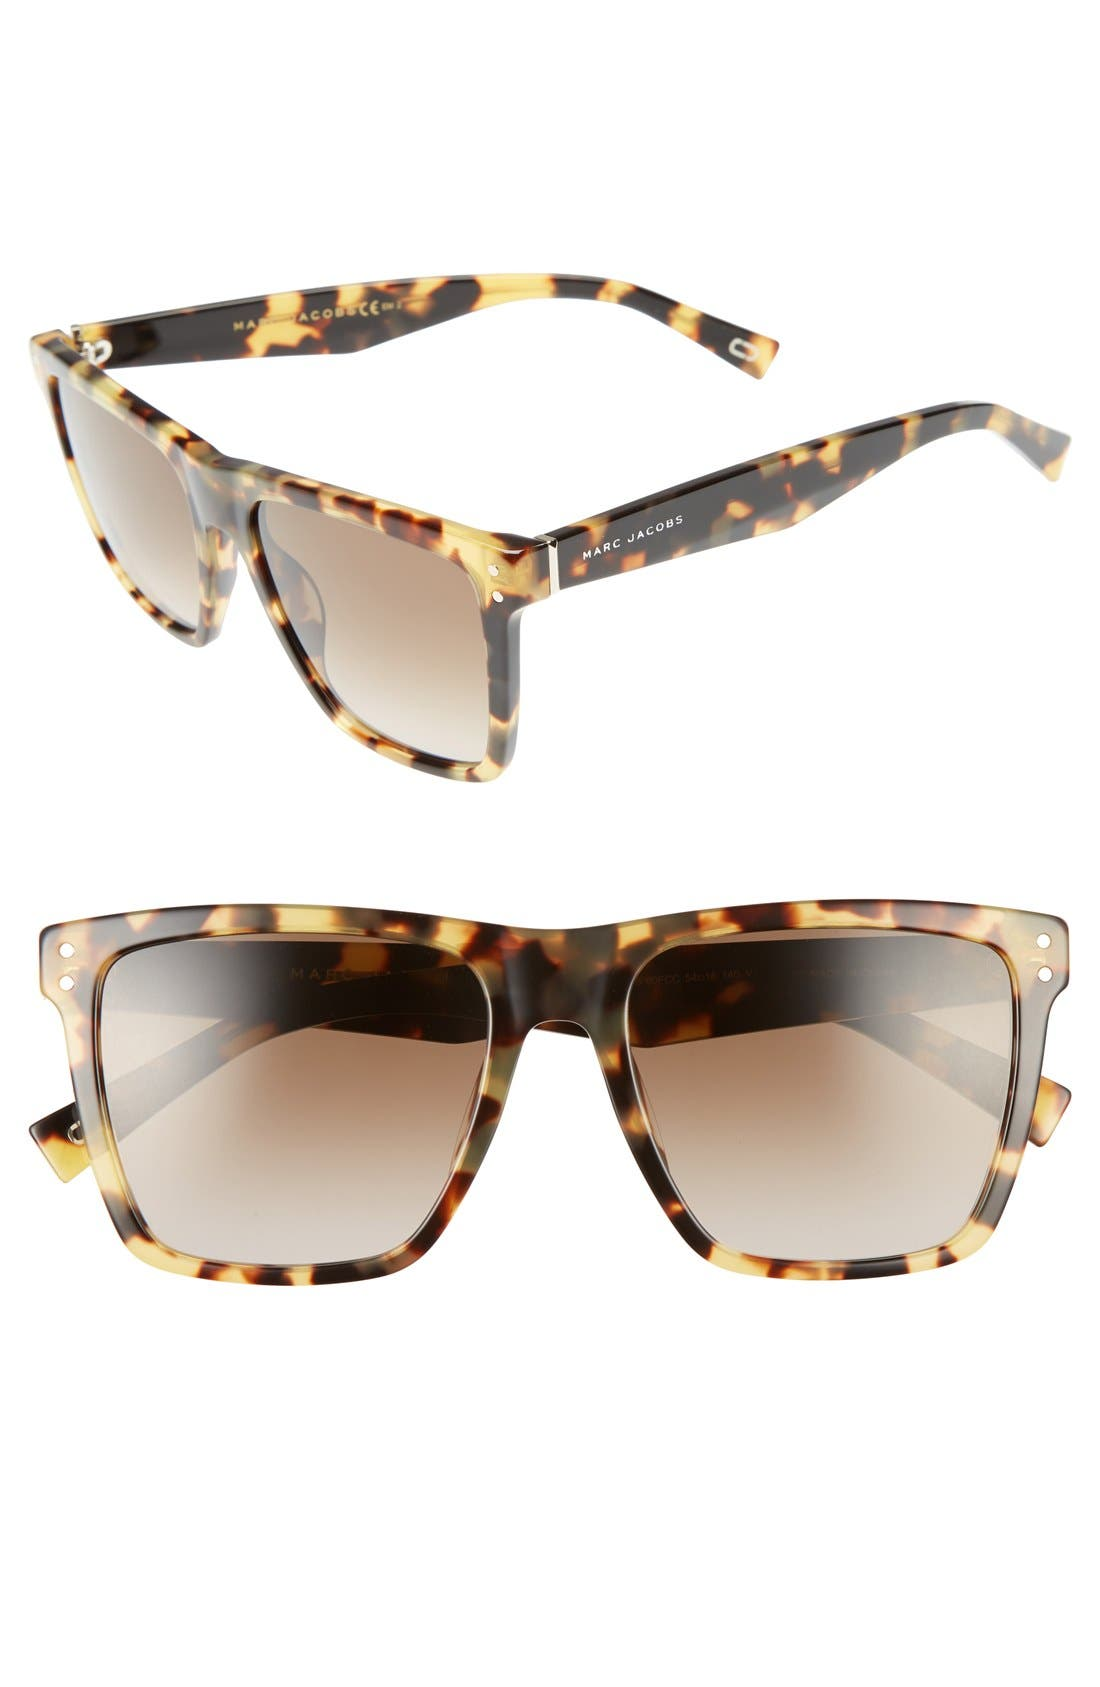 54mm Flat Top Gradient Square Frame Sunglasses,                         Main,                         color, Spotted Havana